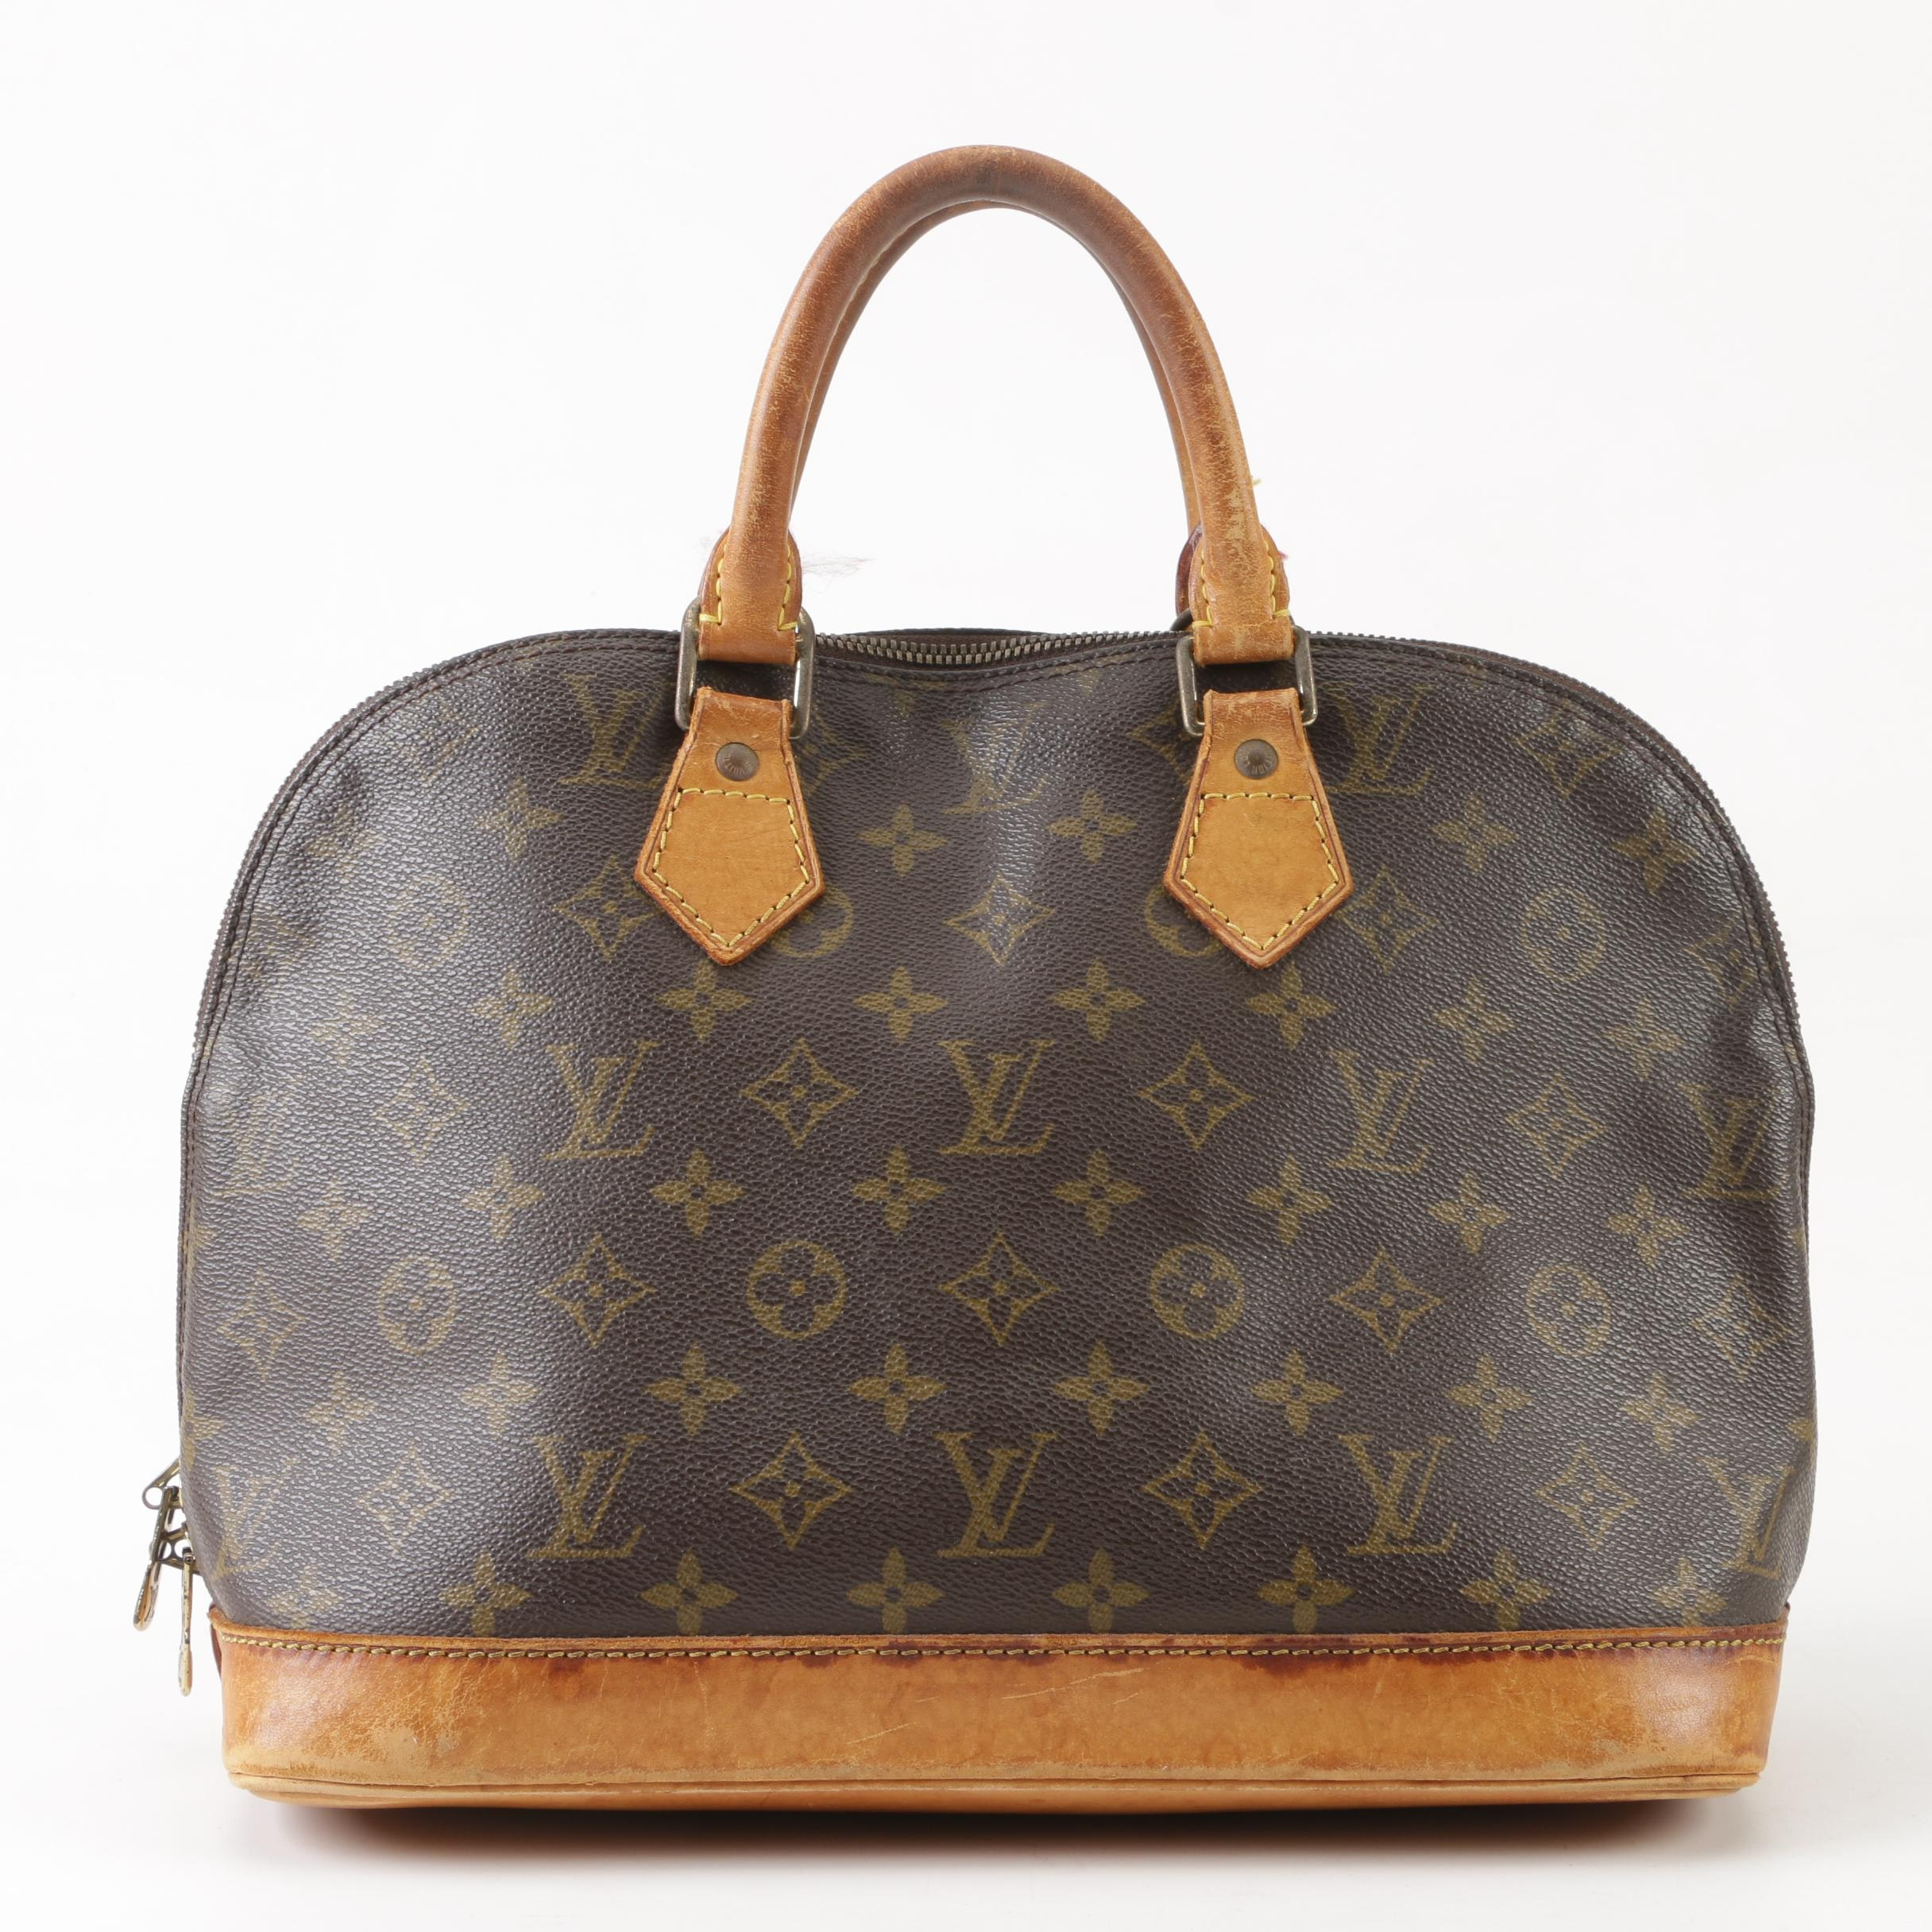 Louis Vuitton Paris Alma PM Monogram Canvas Handbag, 1995